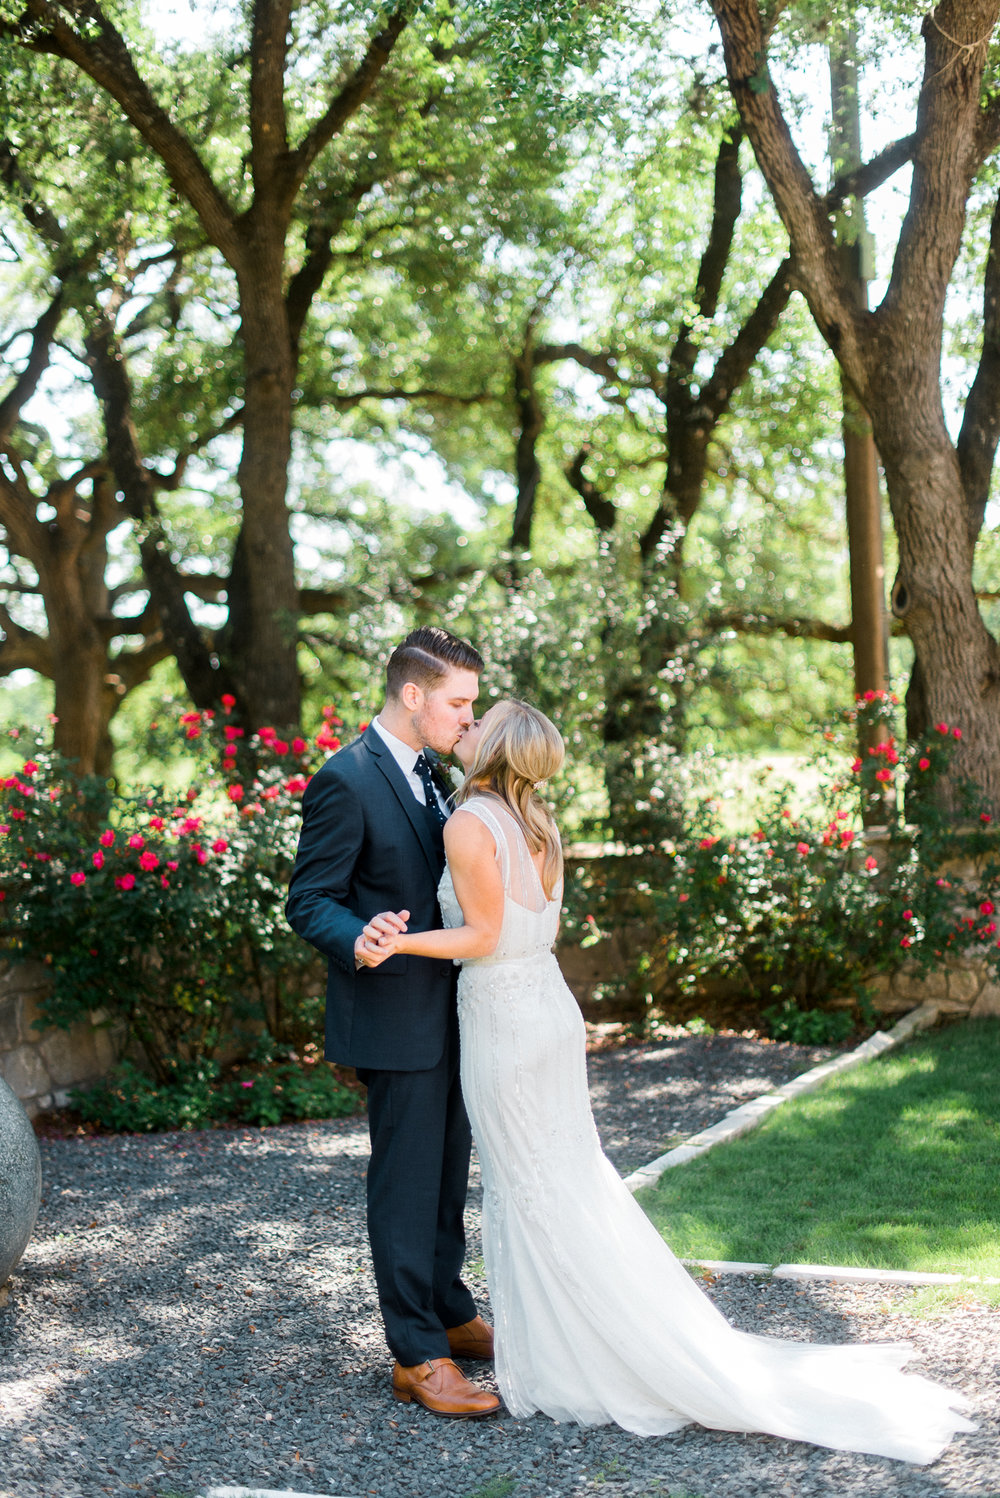 Austin_Fine _Art_Wedding_Photographer_ Justin_Douglas_ First_Look_07.jpg